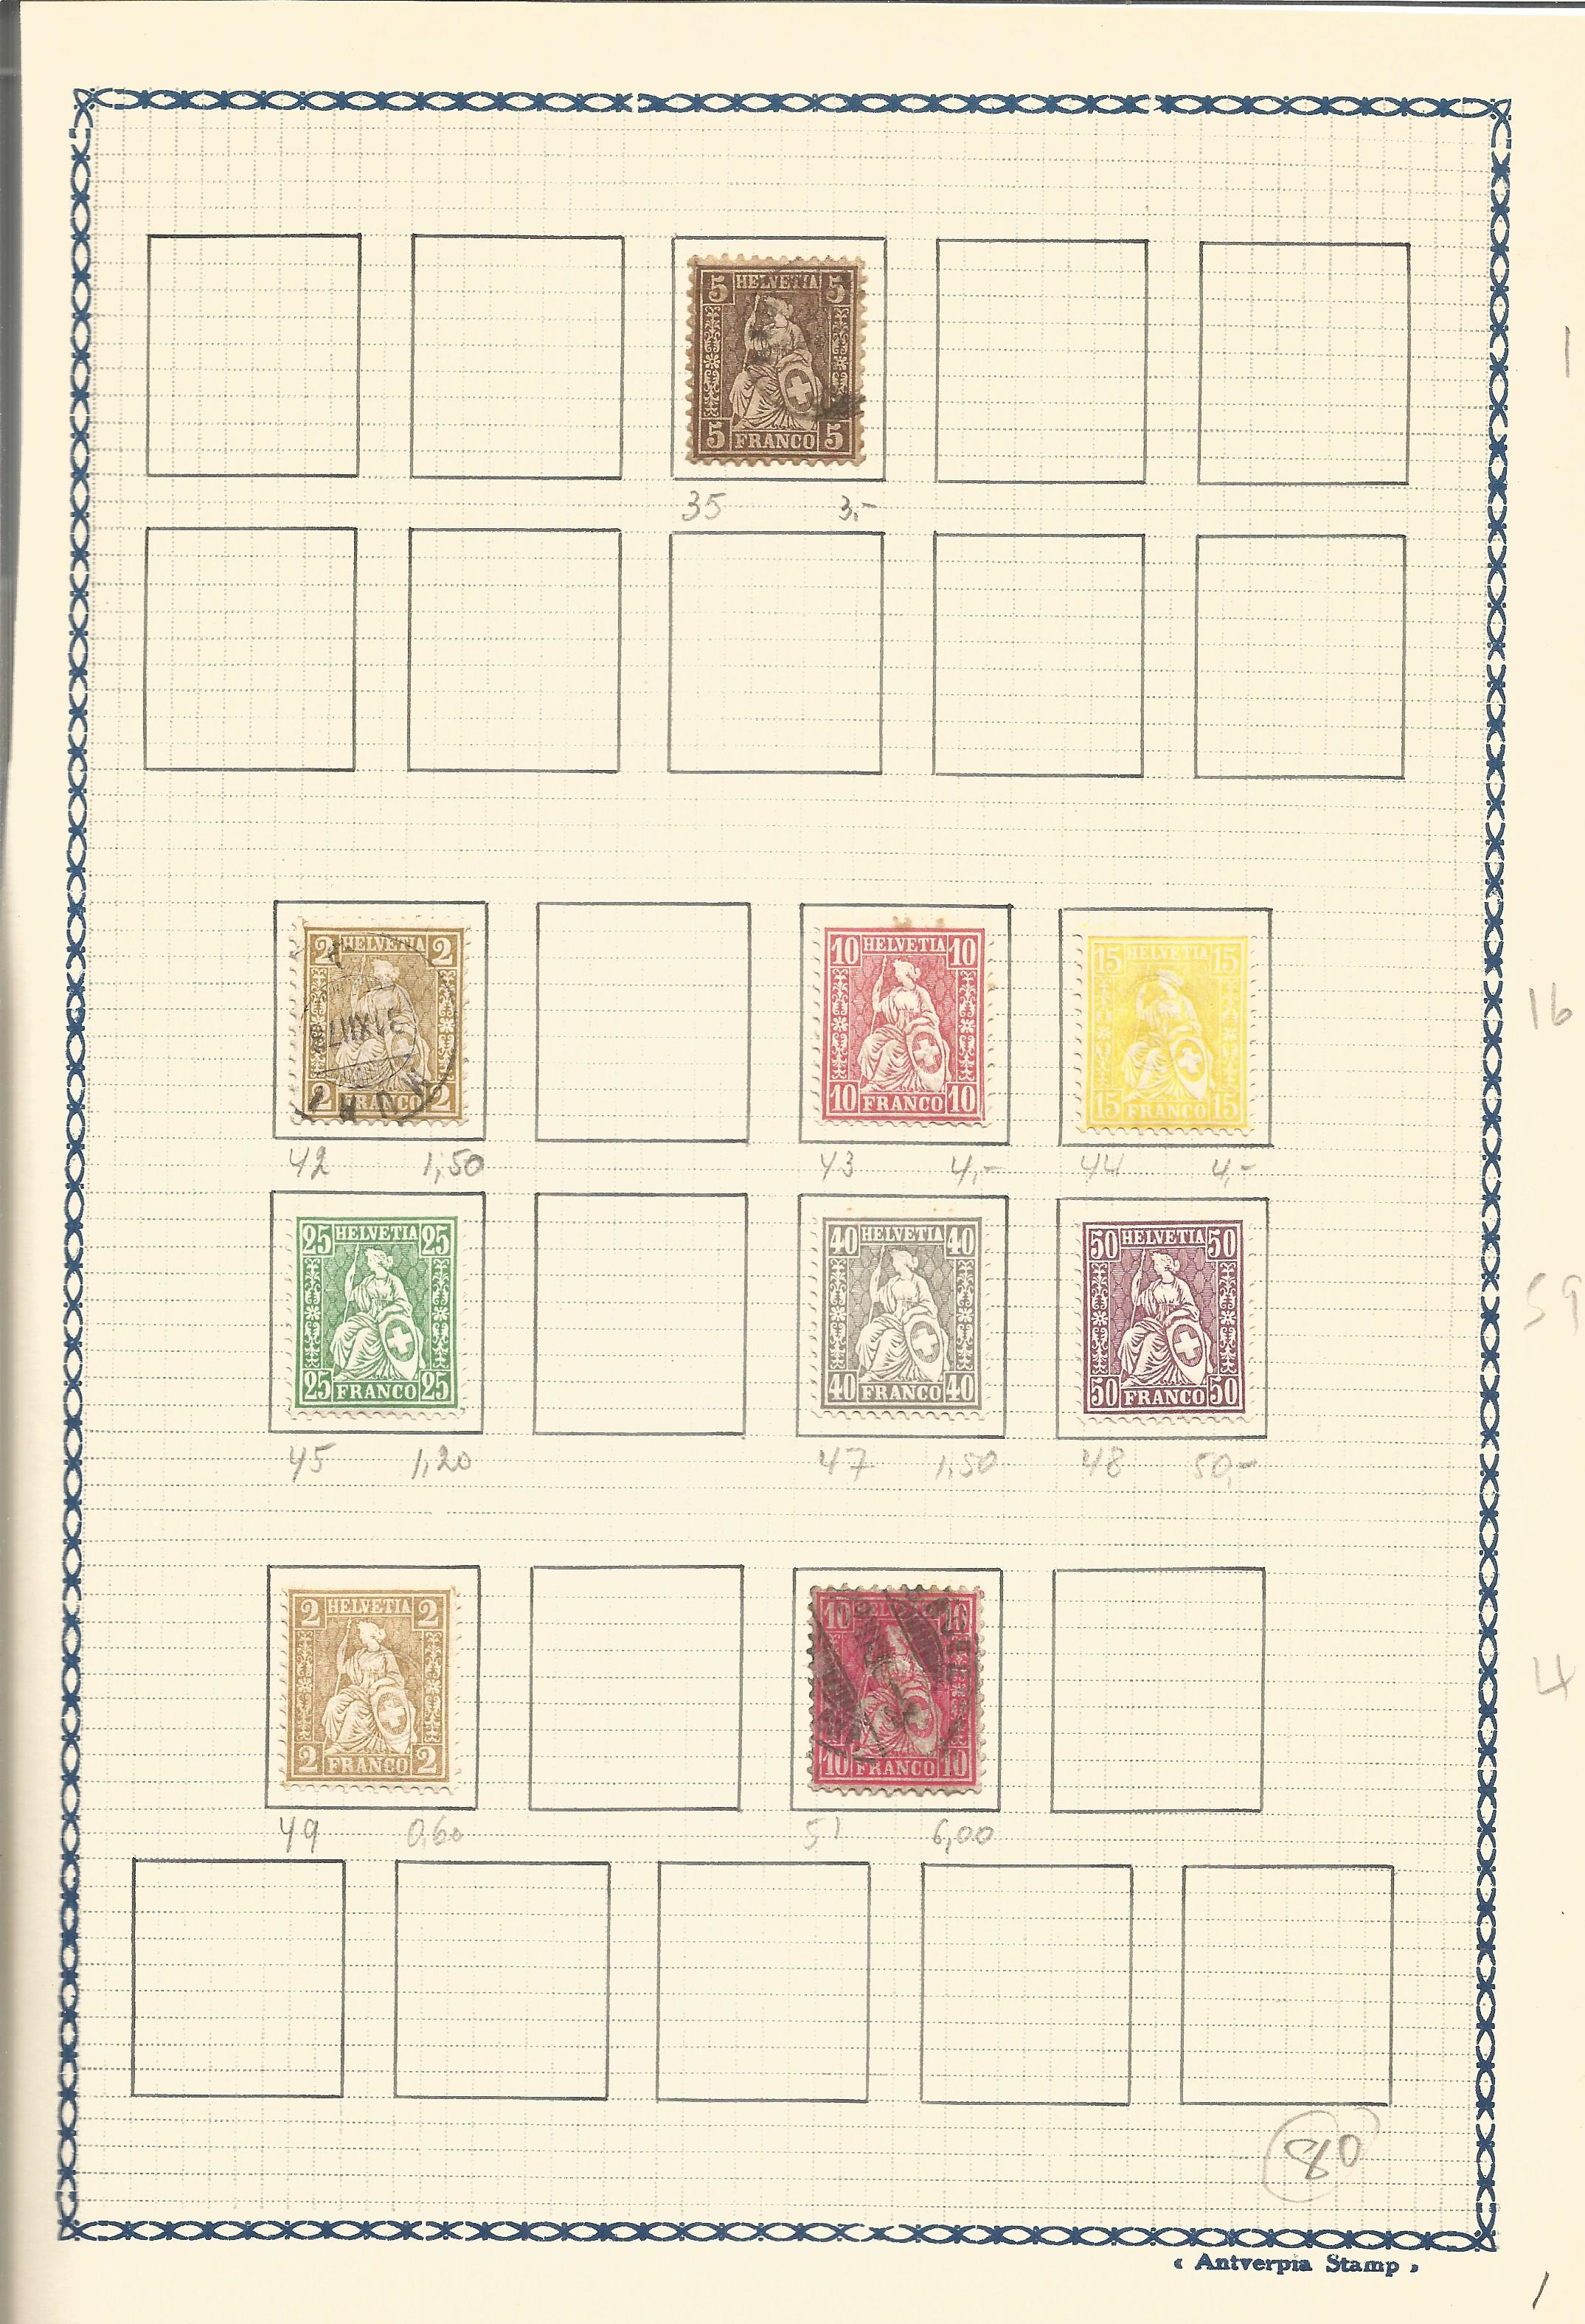 Swiss stamp collection. Mainly mint. 9 stamps. 1862. Good condition. We combine postage on